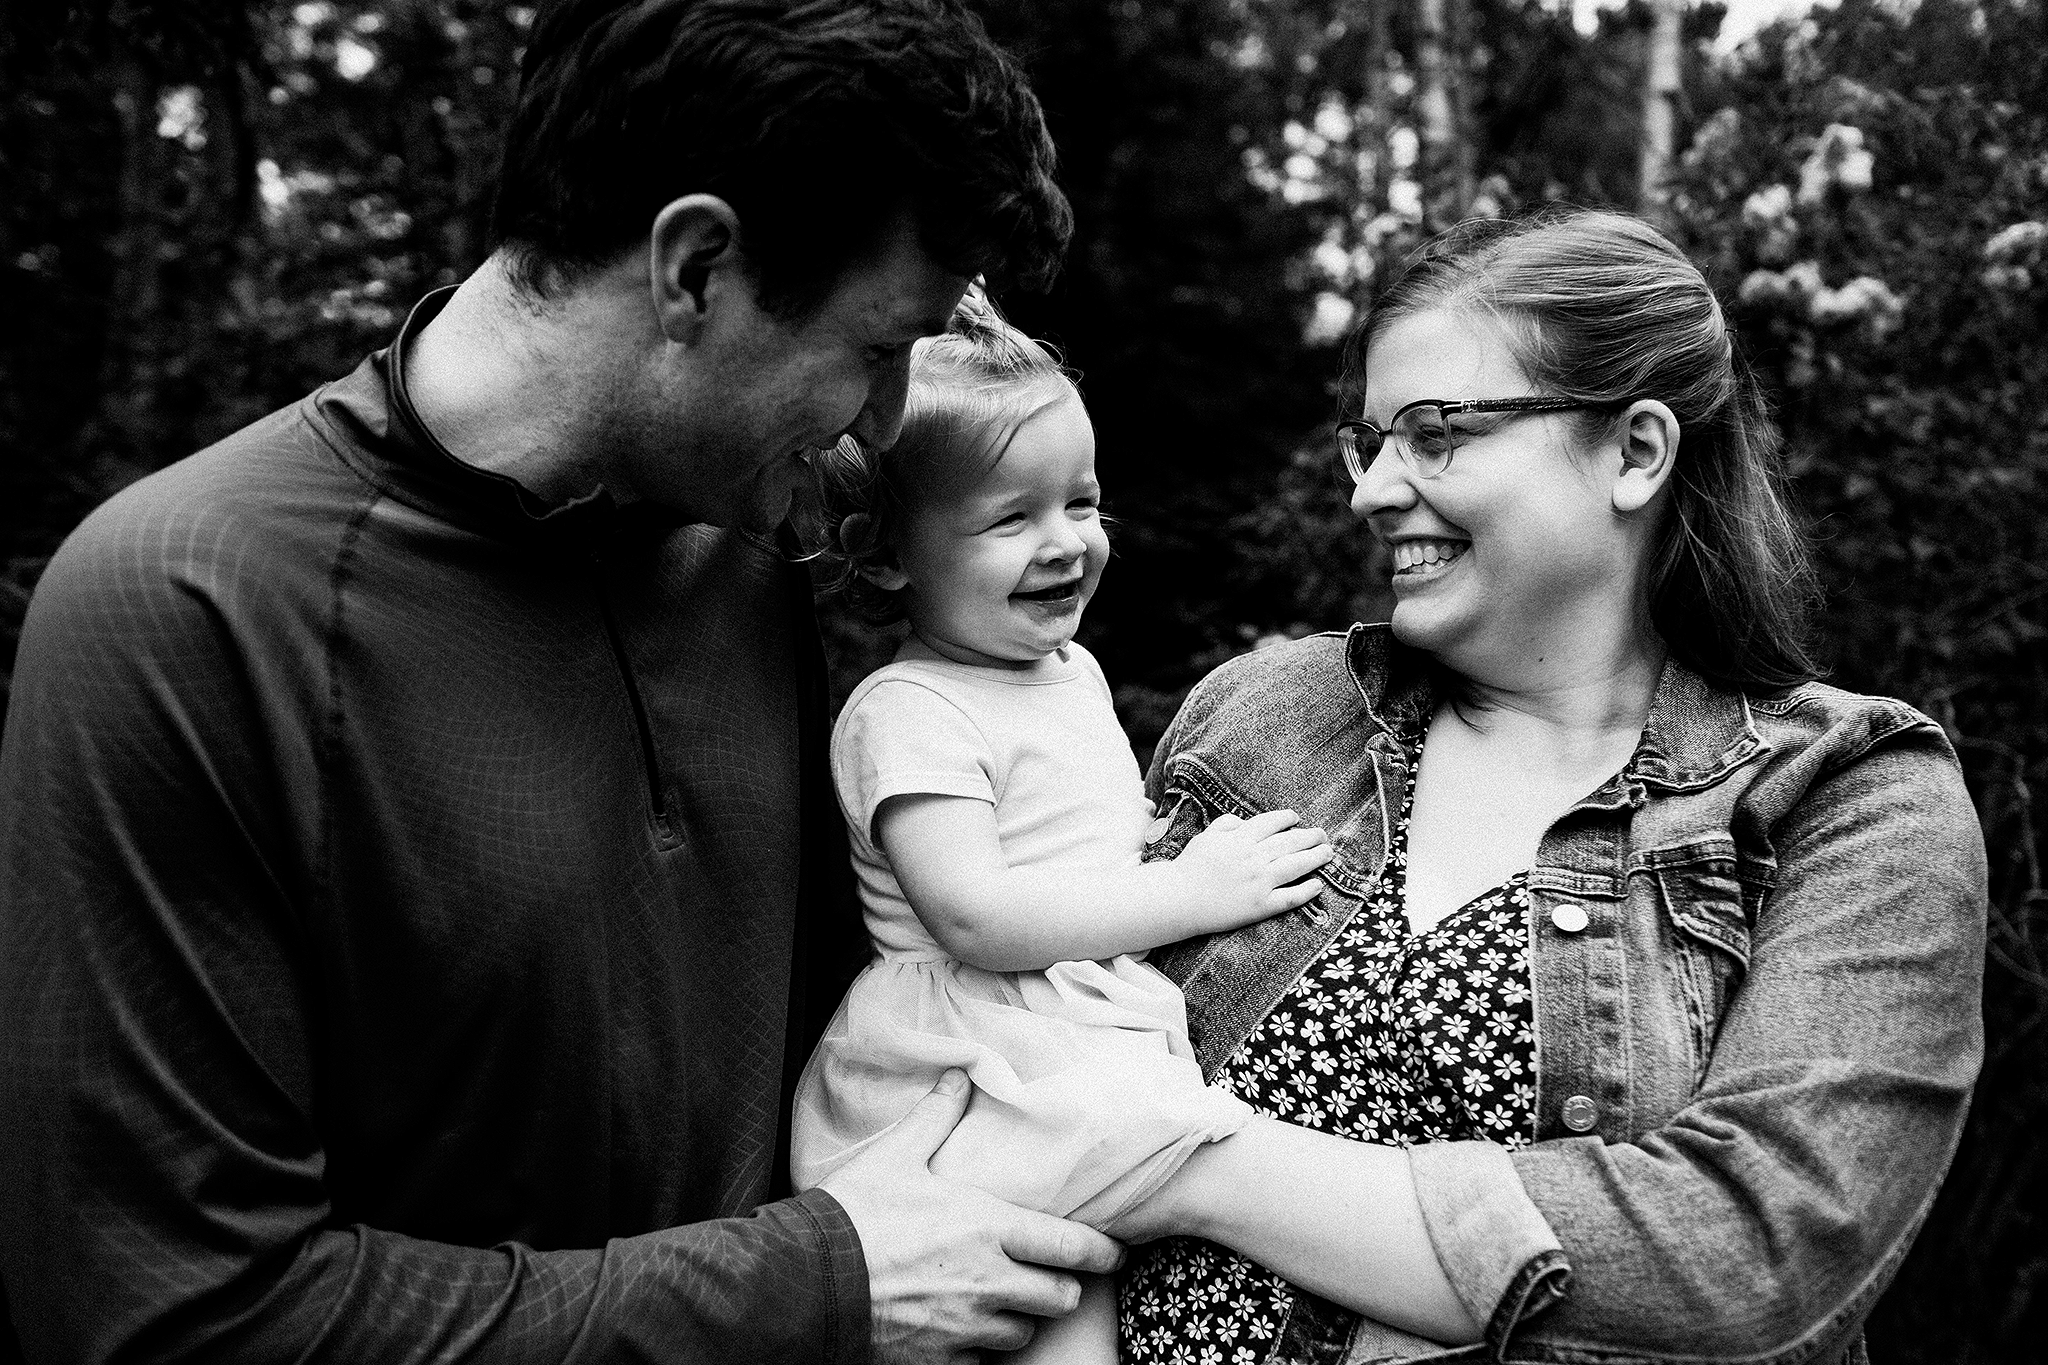 Mom, dad, baby | photoshoot in the forest | Sheboygan, WI Family photographer | Chrissy Deming photography